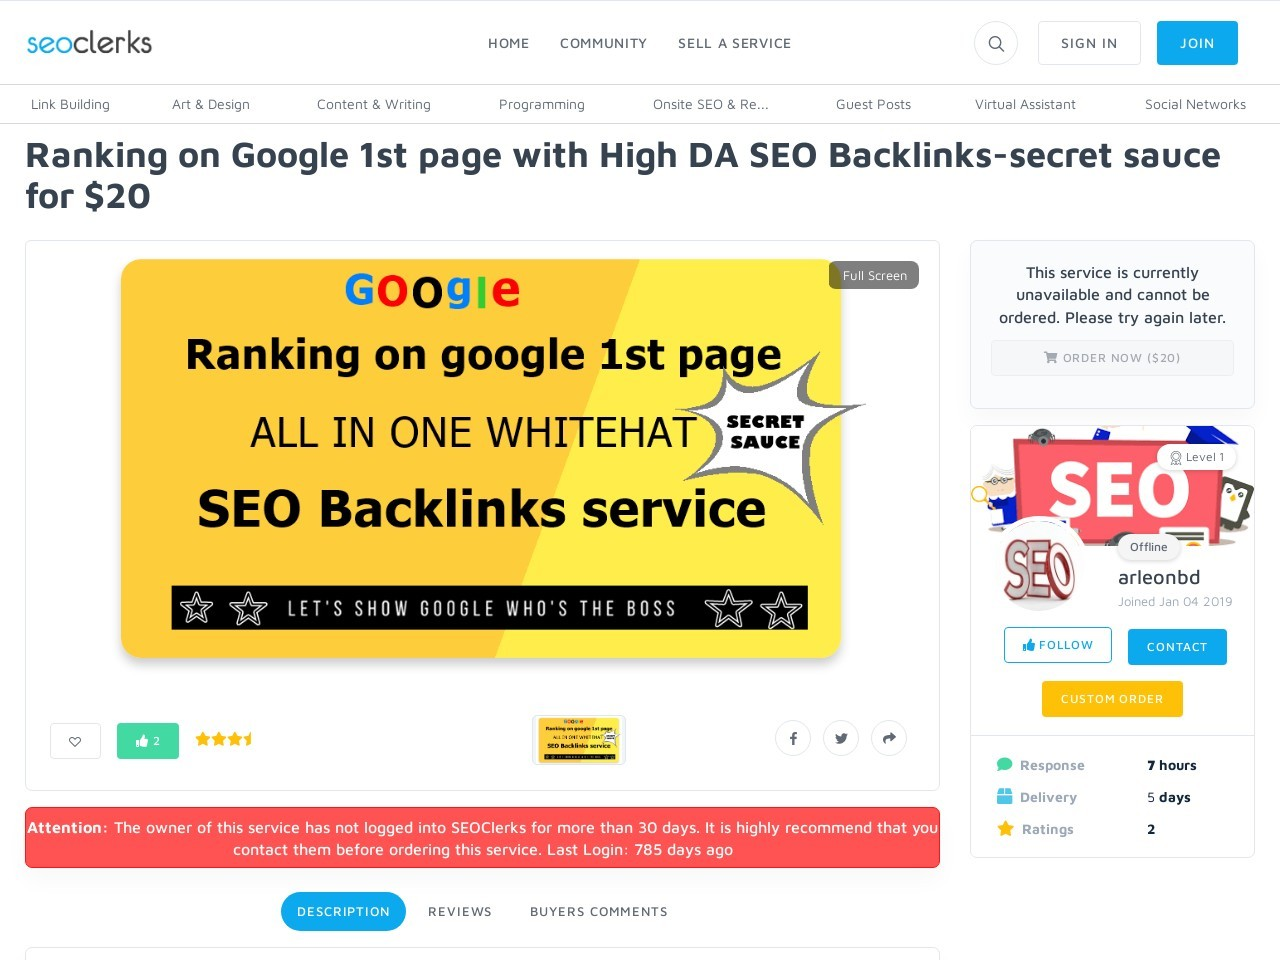 Ranking on Google 1st page with High DA SEO Backlinks for $20